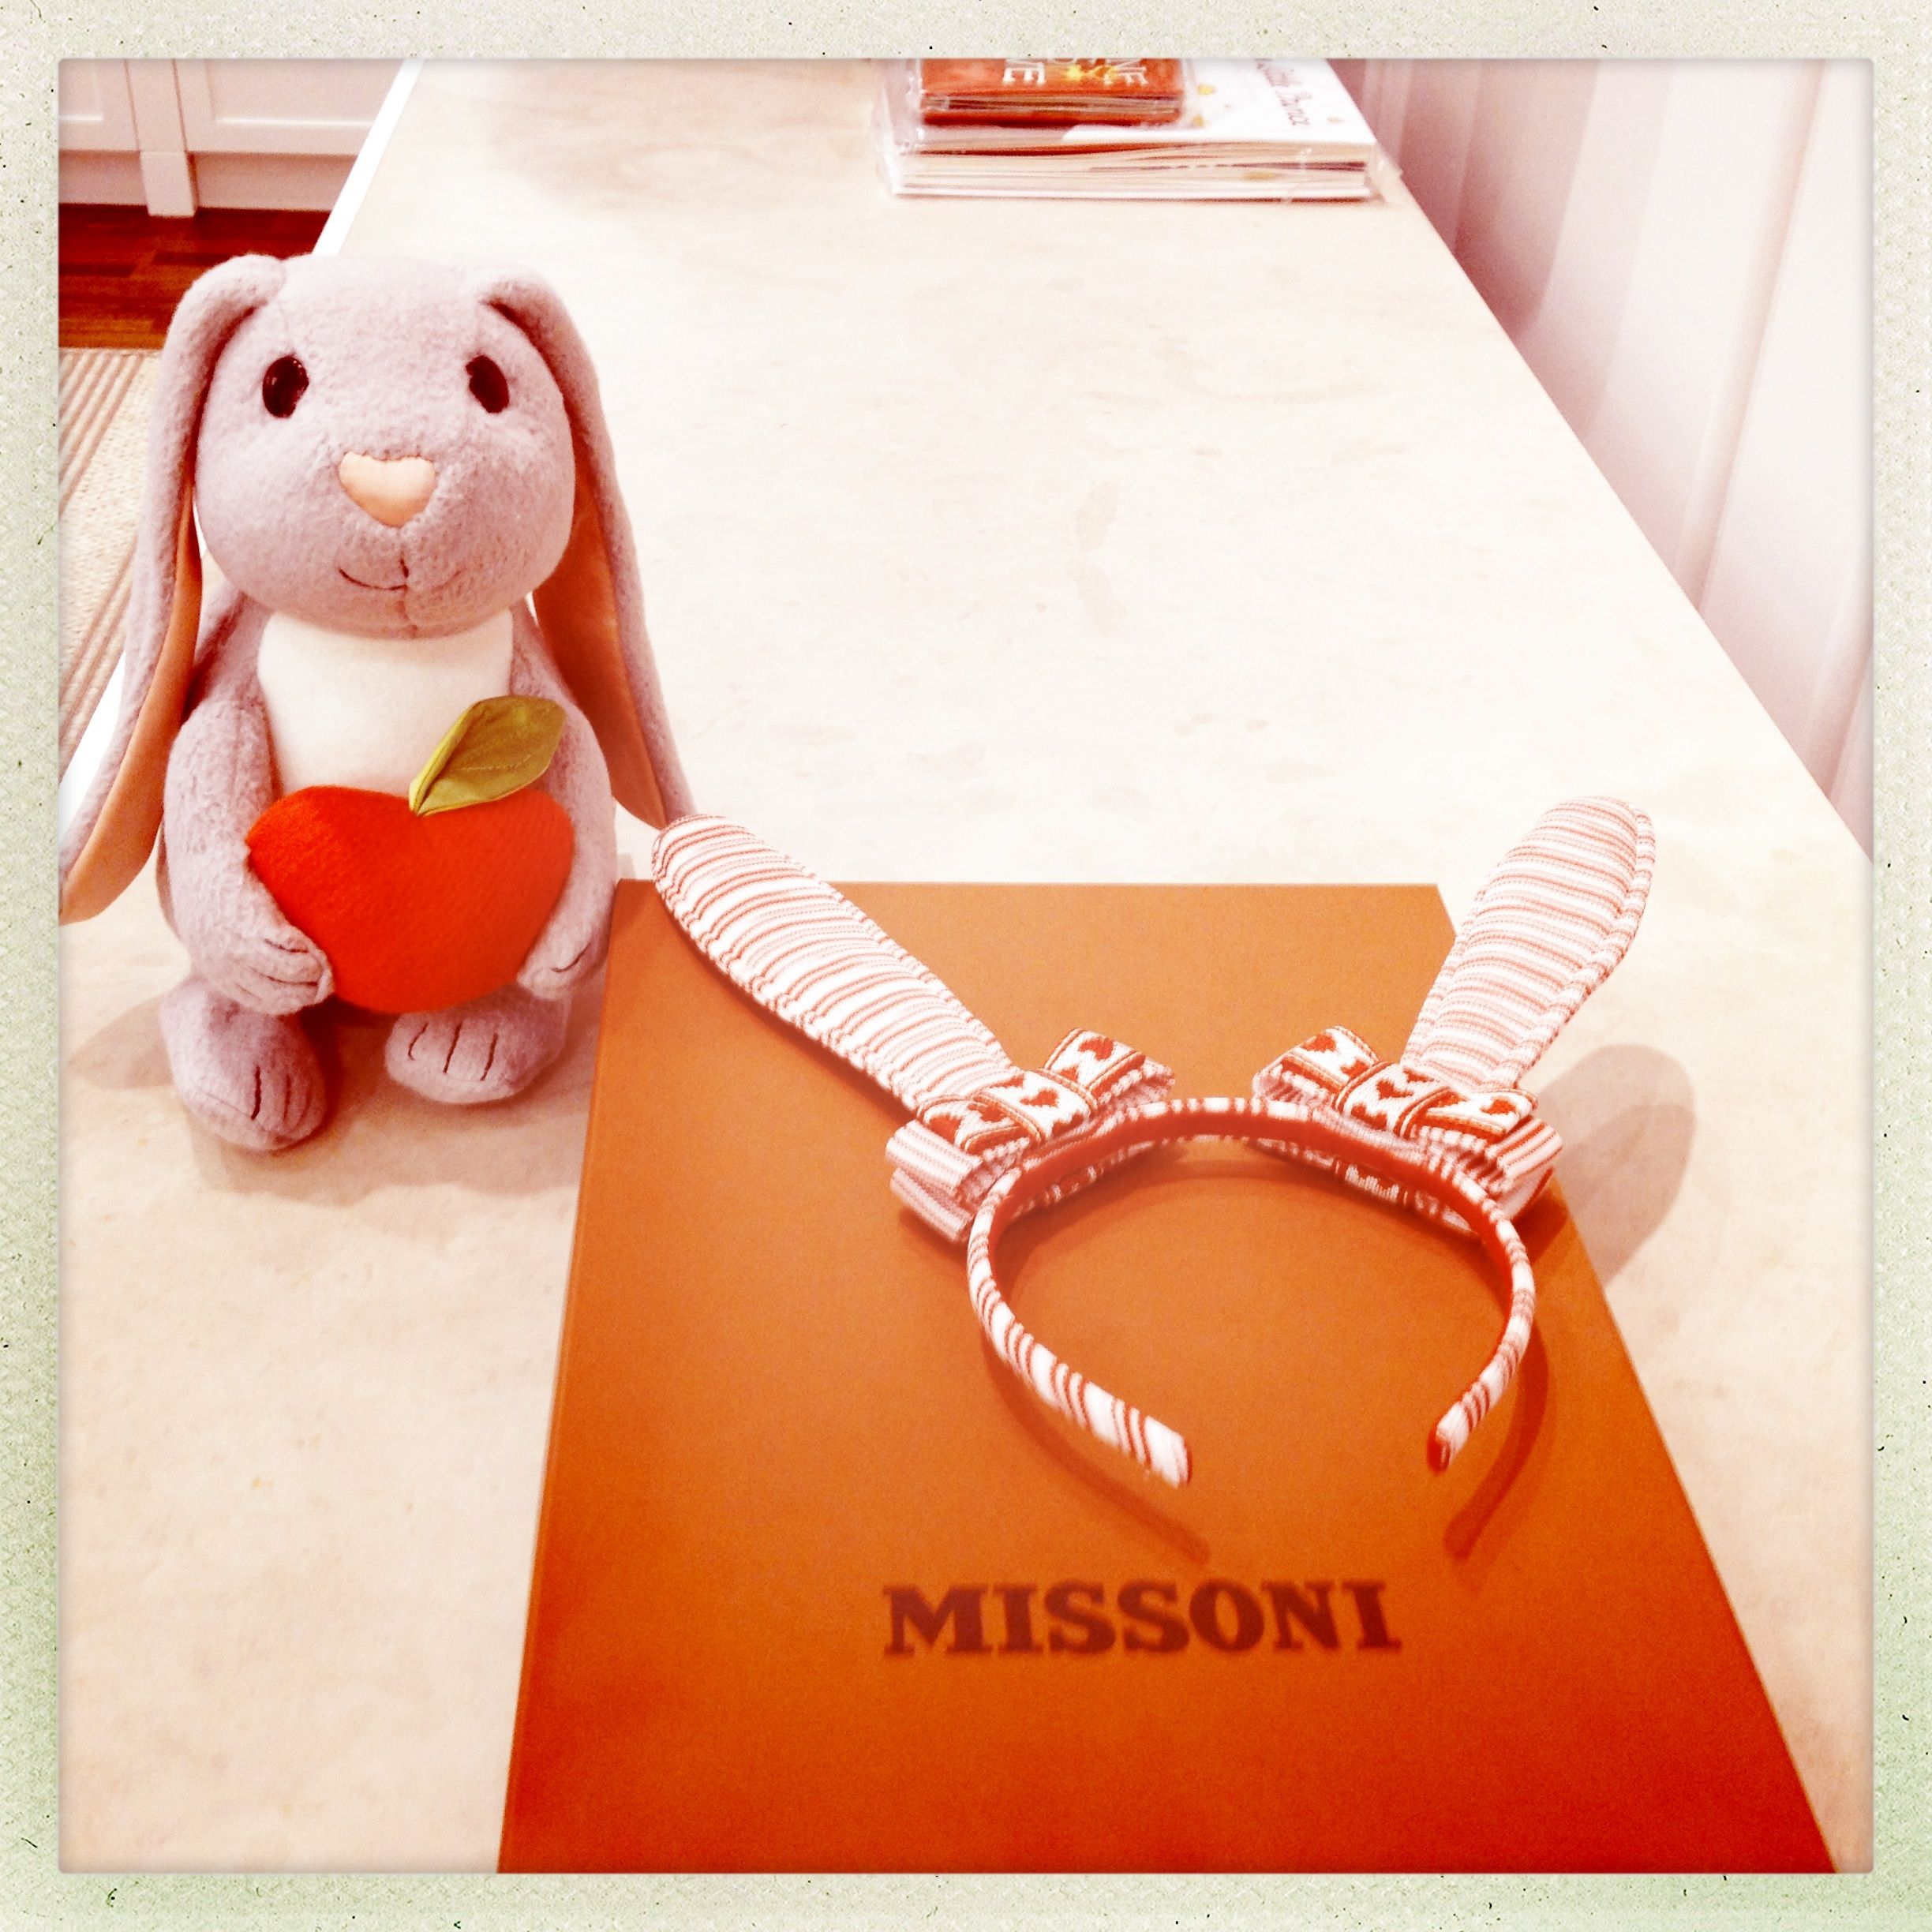 Mooning Over New Missoni: We Are Over The Moon For This Shopodile.com Easter Sneak